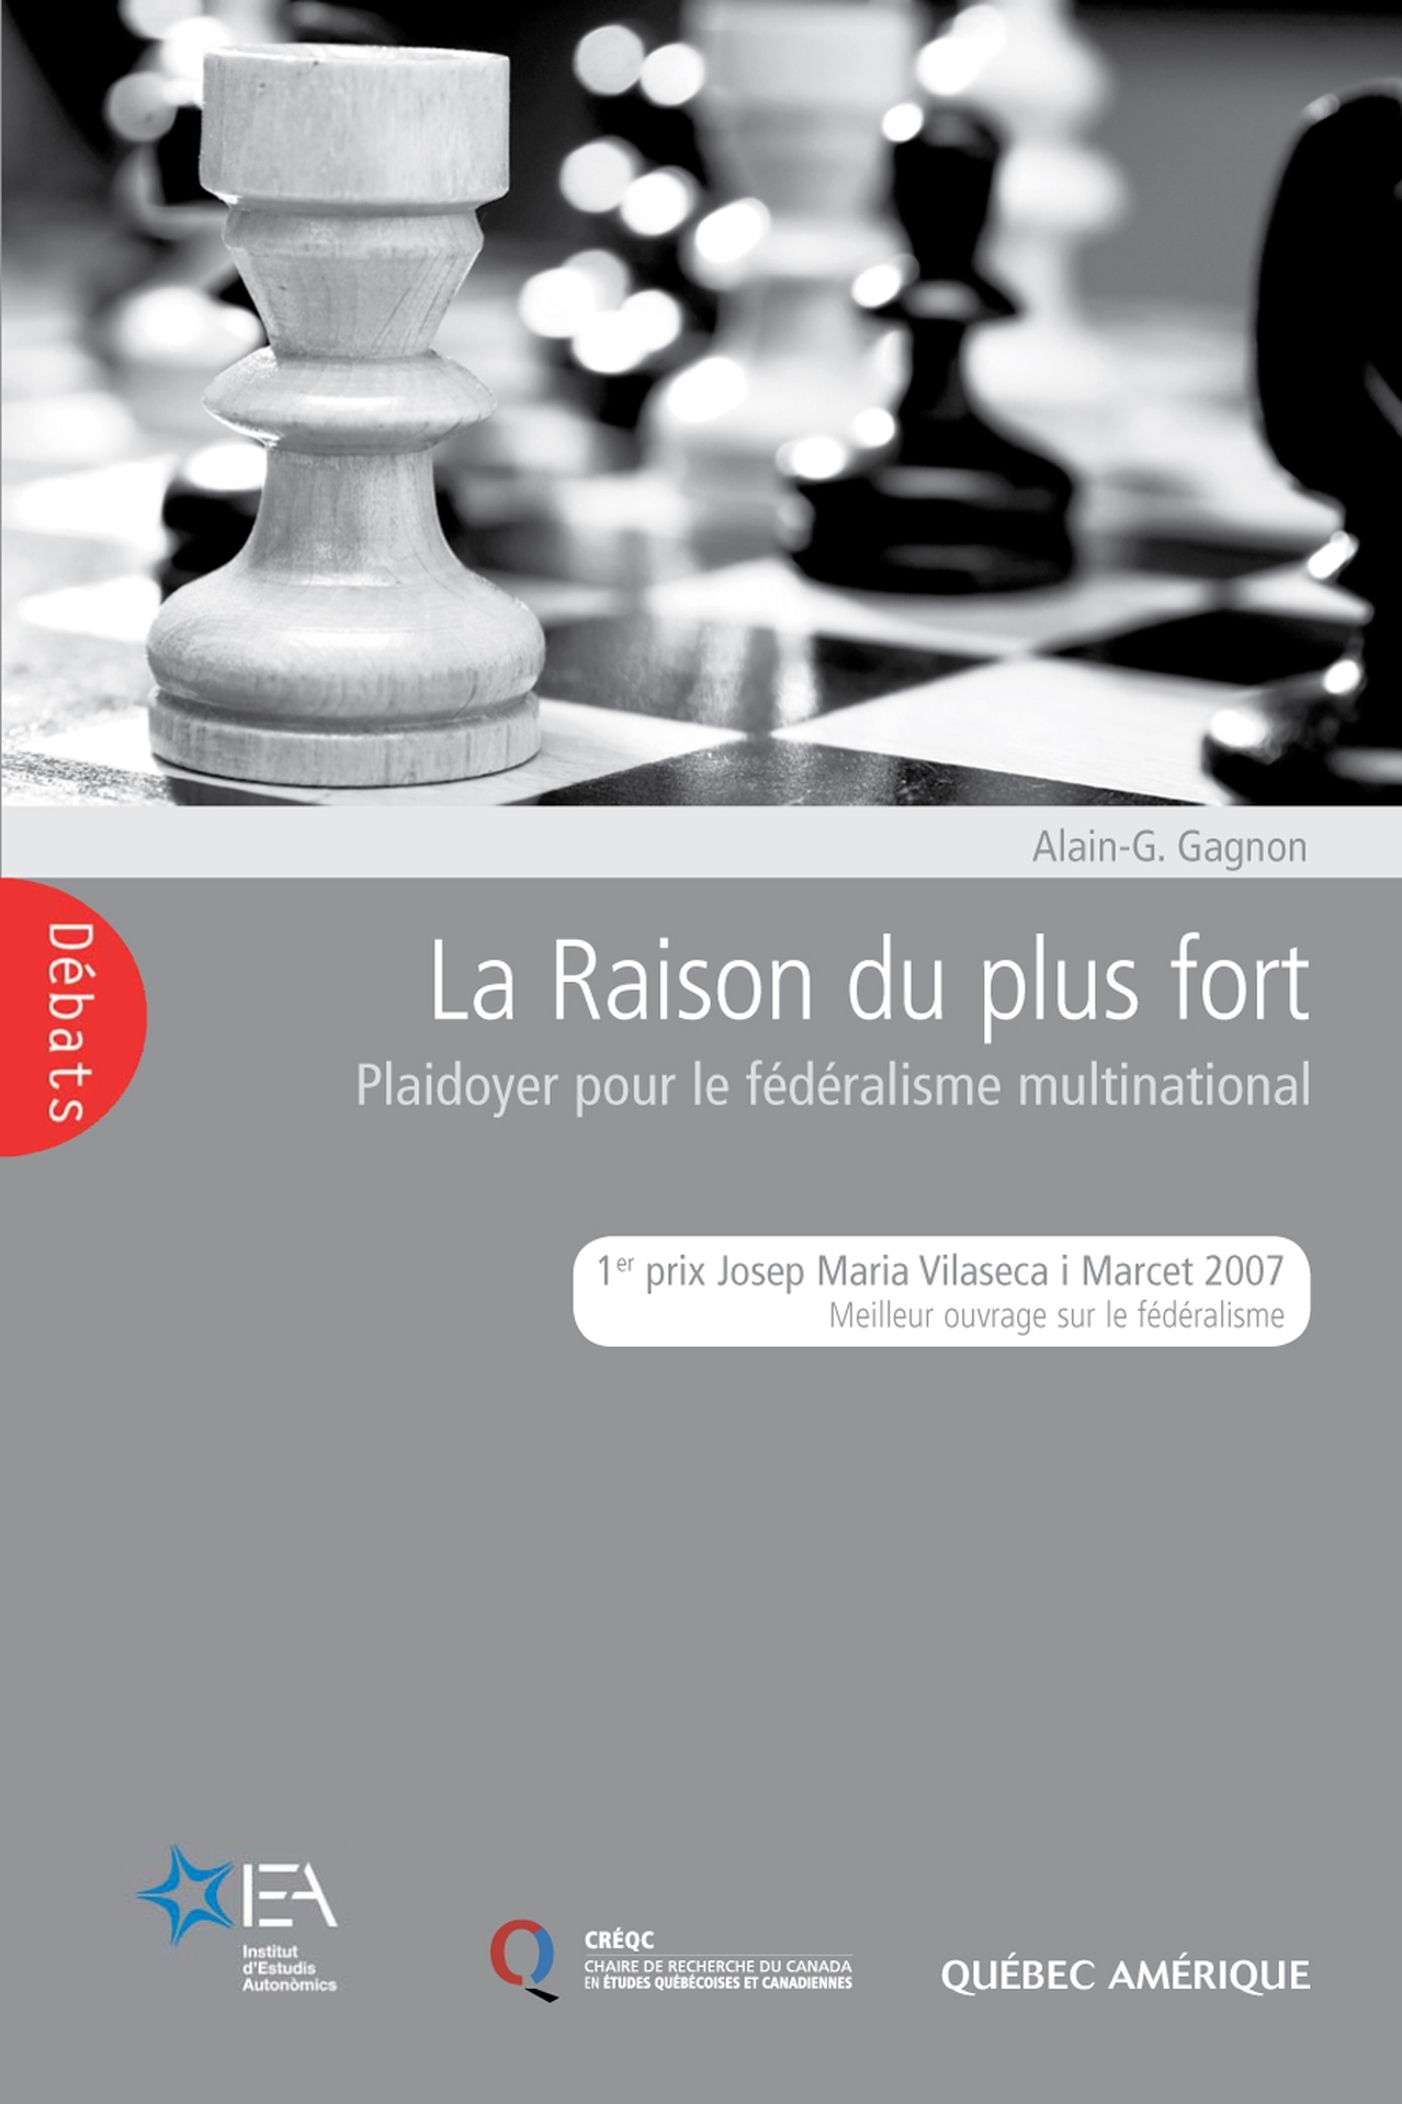 La Raison du plus fort